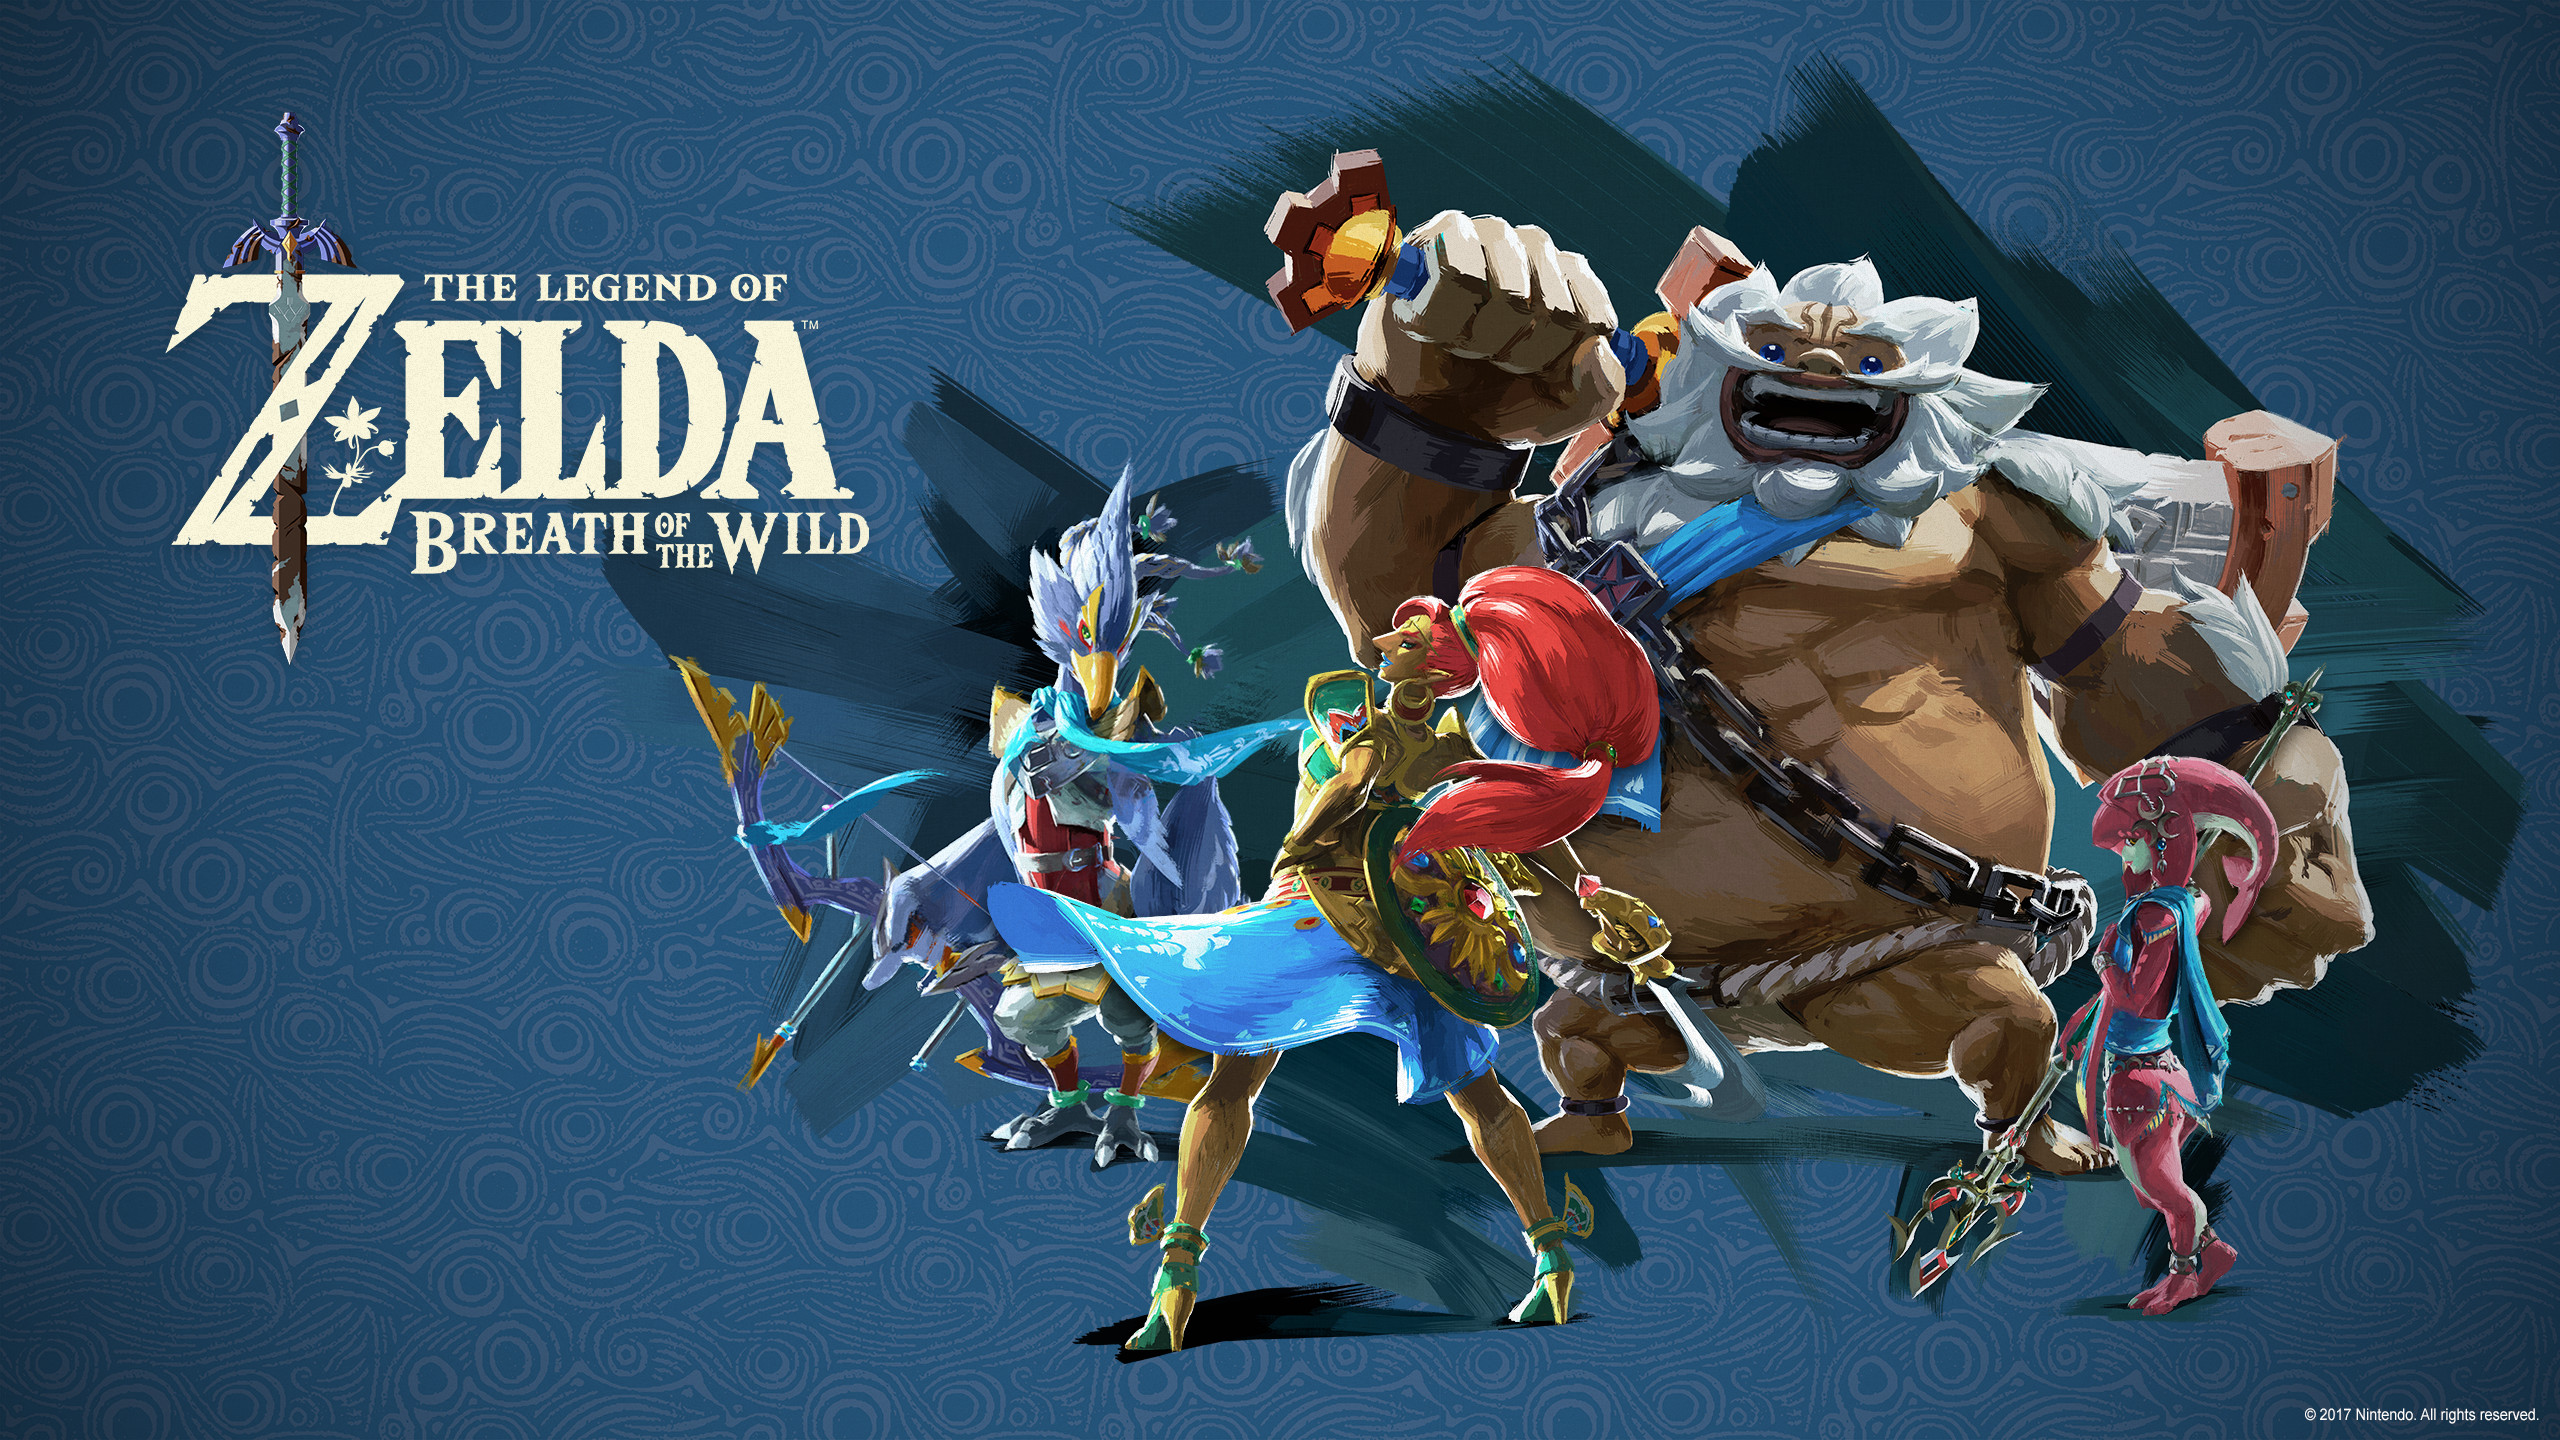 The Legend Of Zelda Breath Of The Wild For The Nintendo Switch Home Gaming System And Wii U Console Media